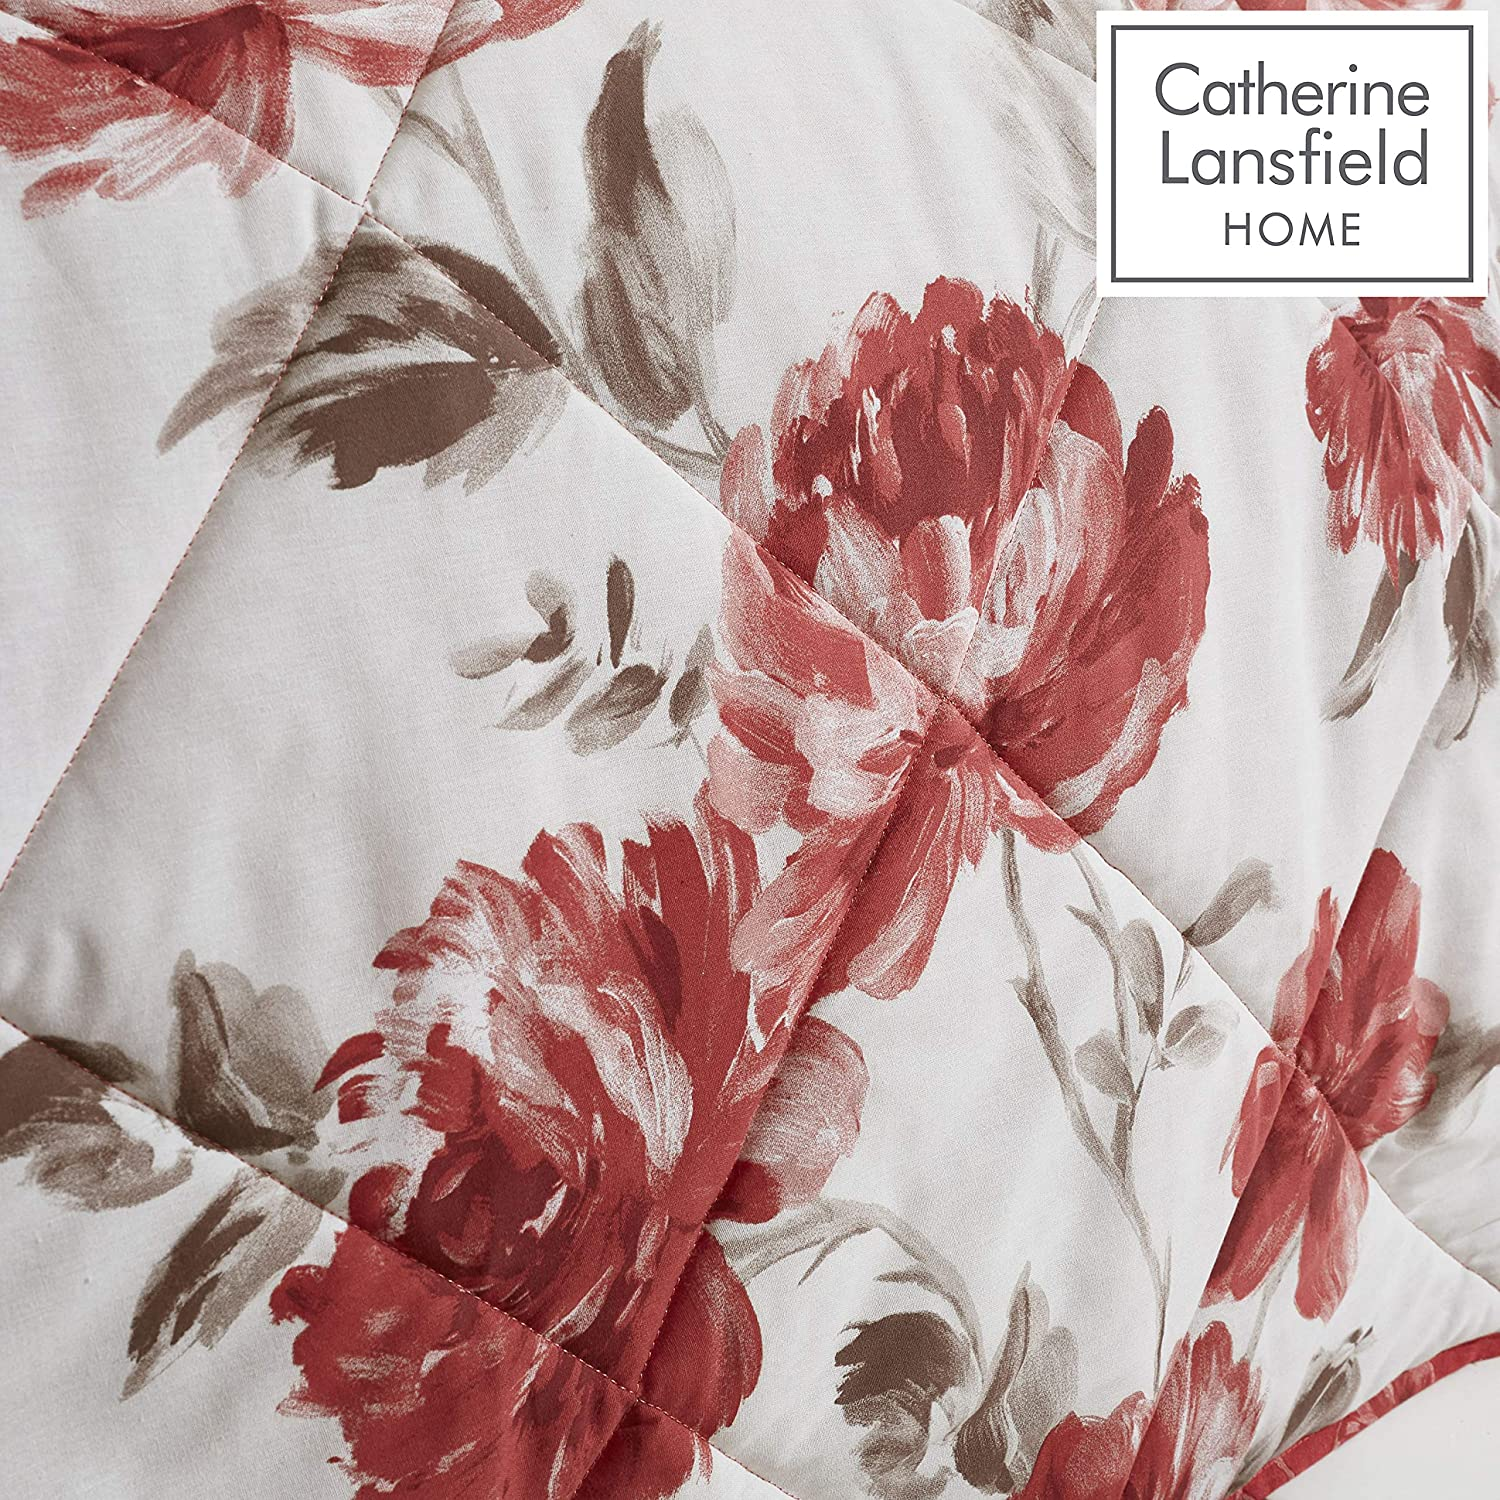 Catherine Lansfield Couvre-lit en Polyester Rouge 220 x 230 cm